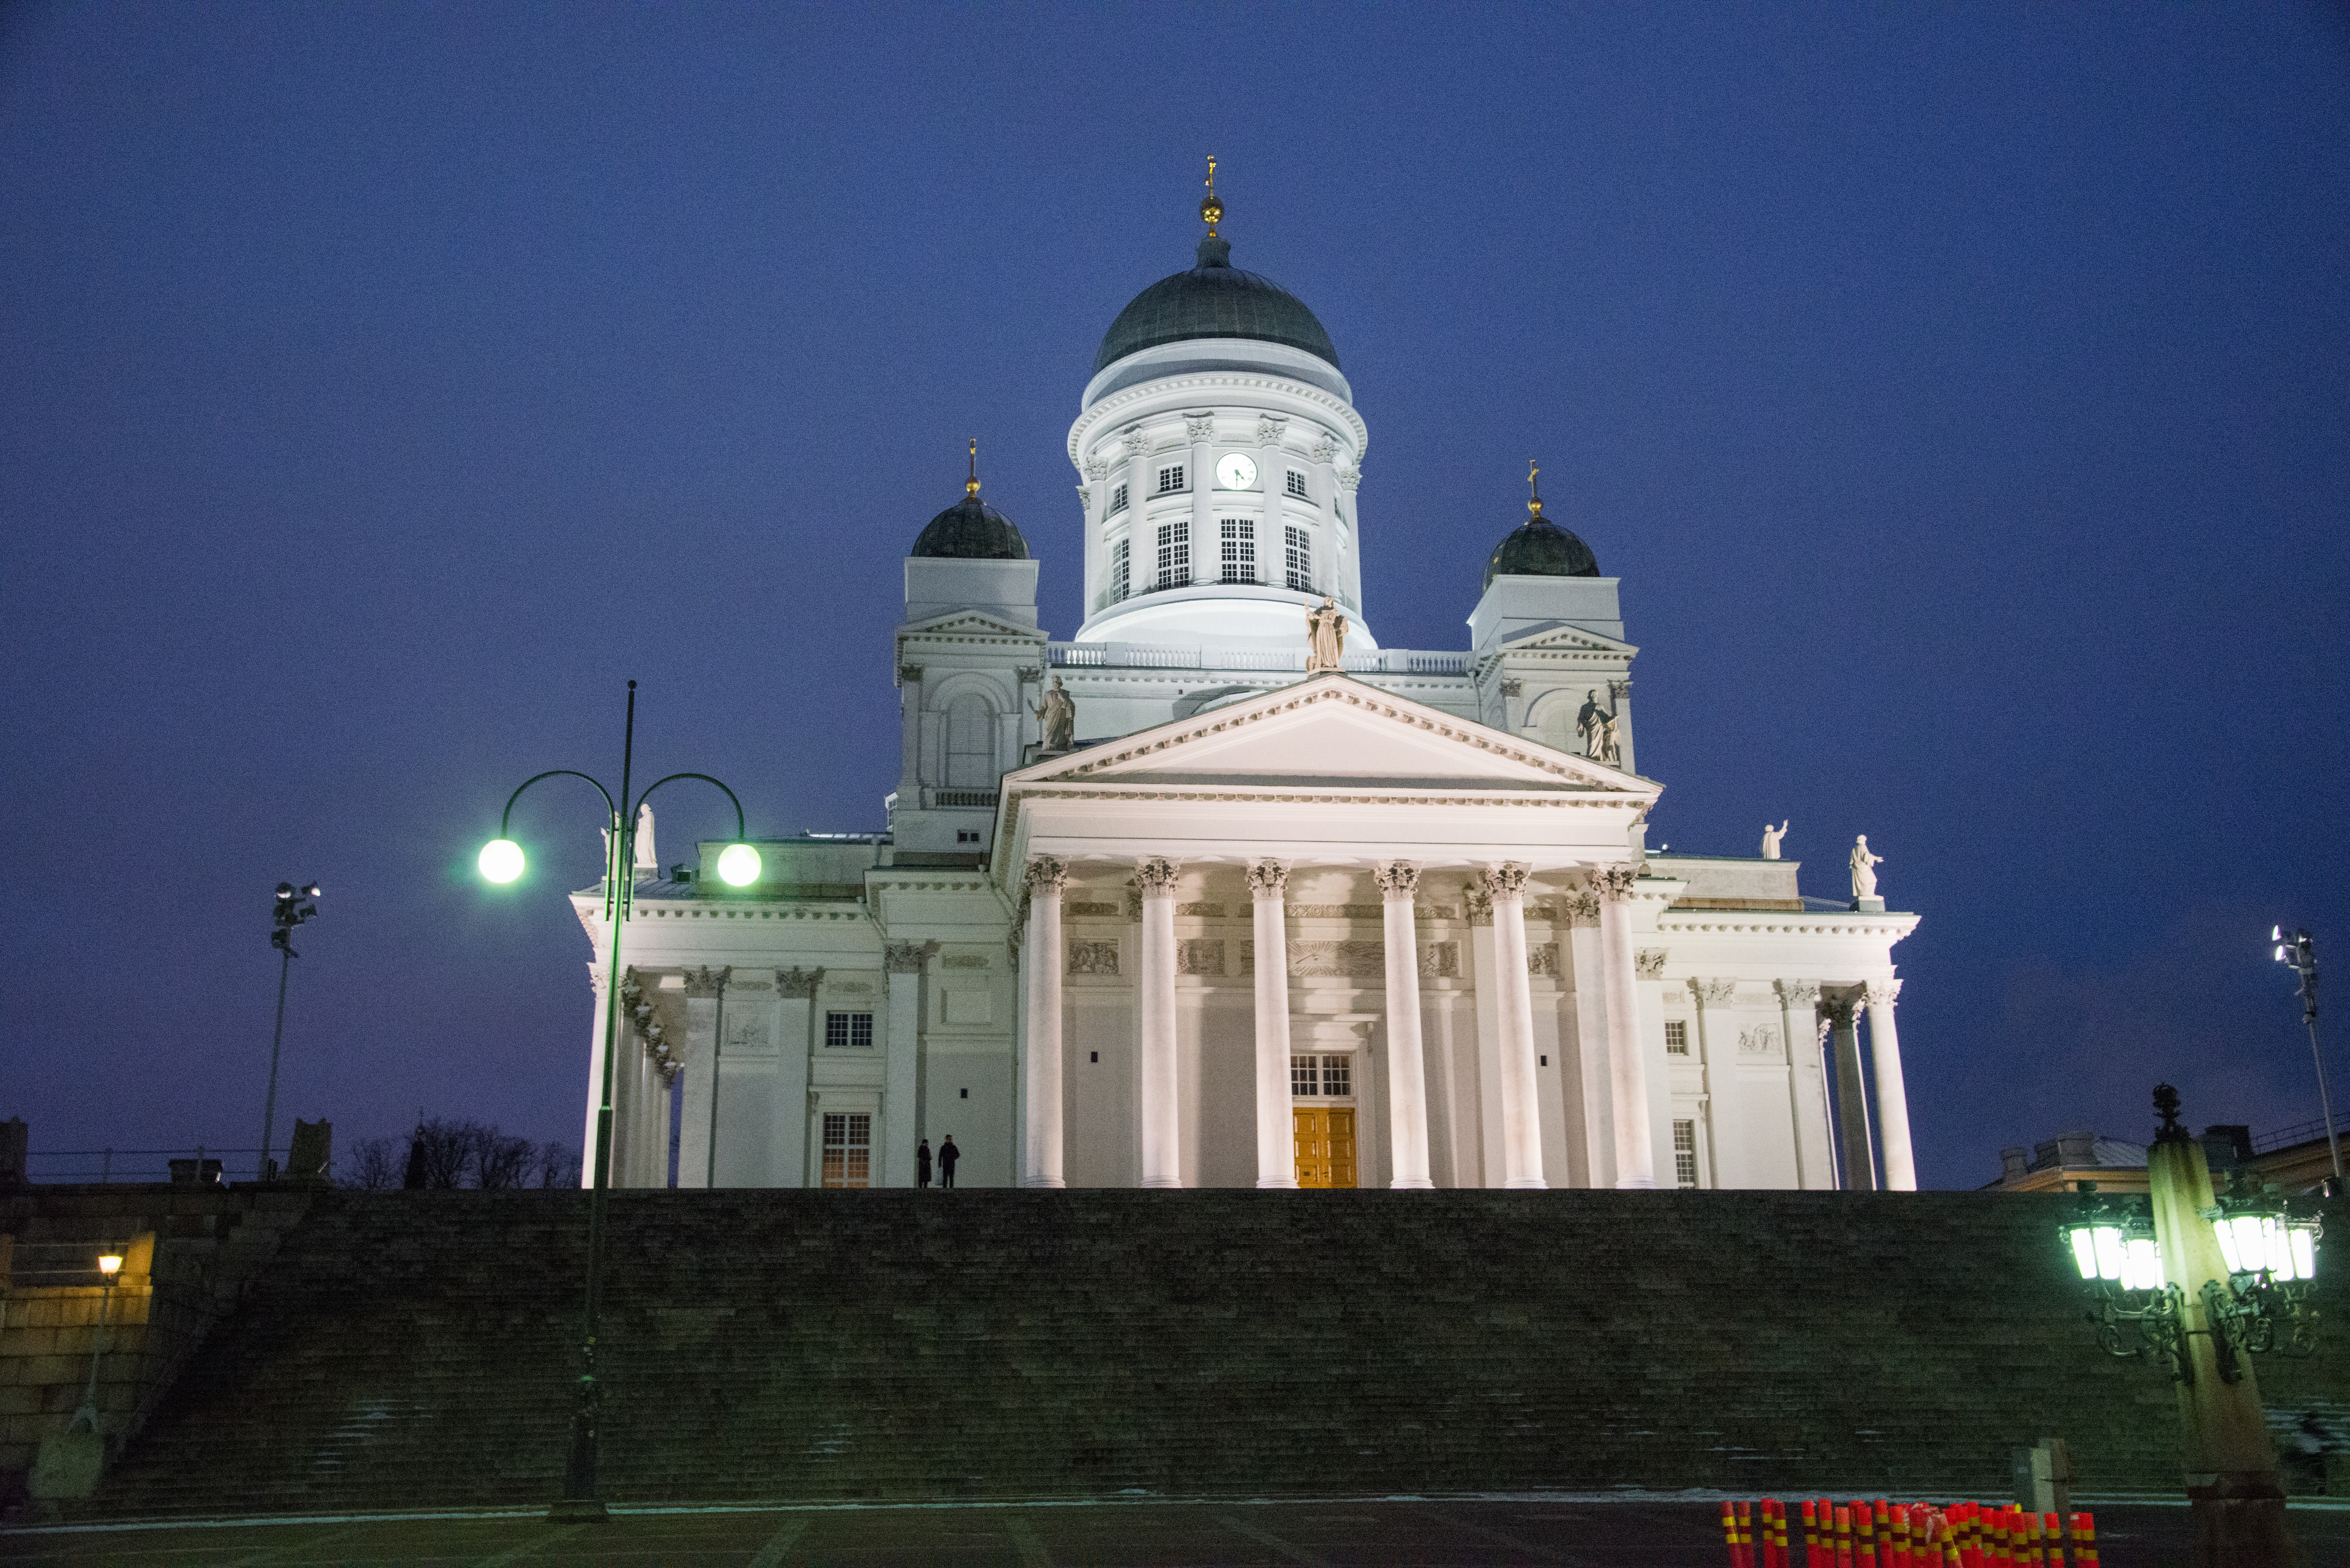 Helsinki, Finland Cathedral